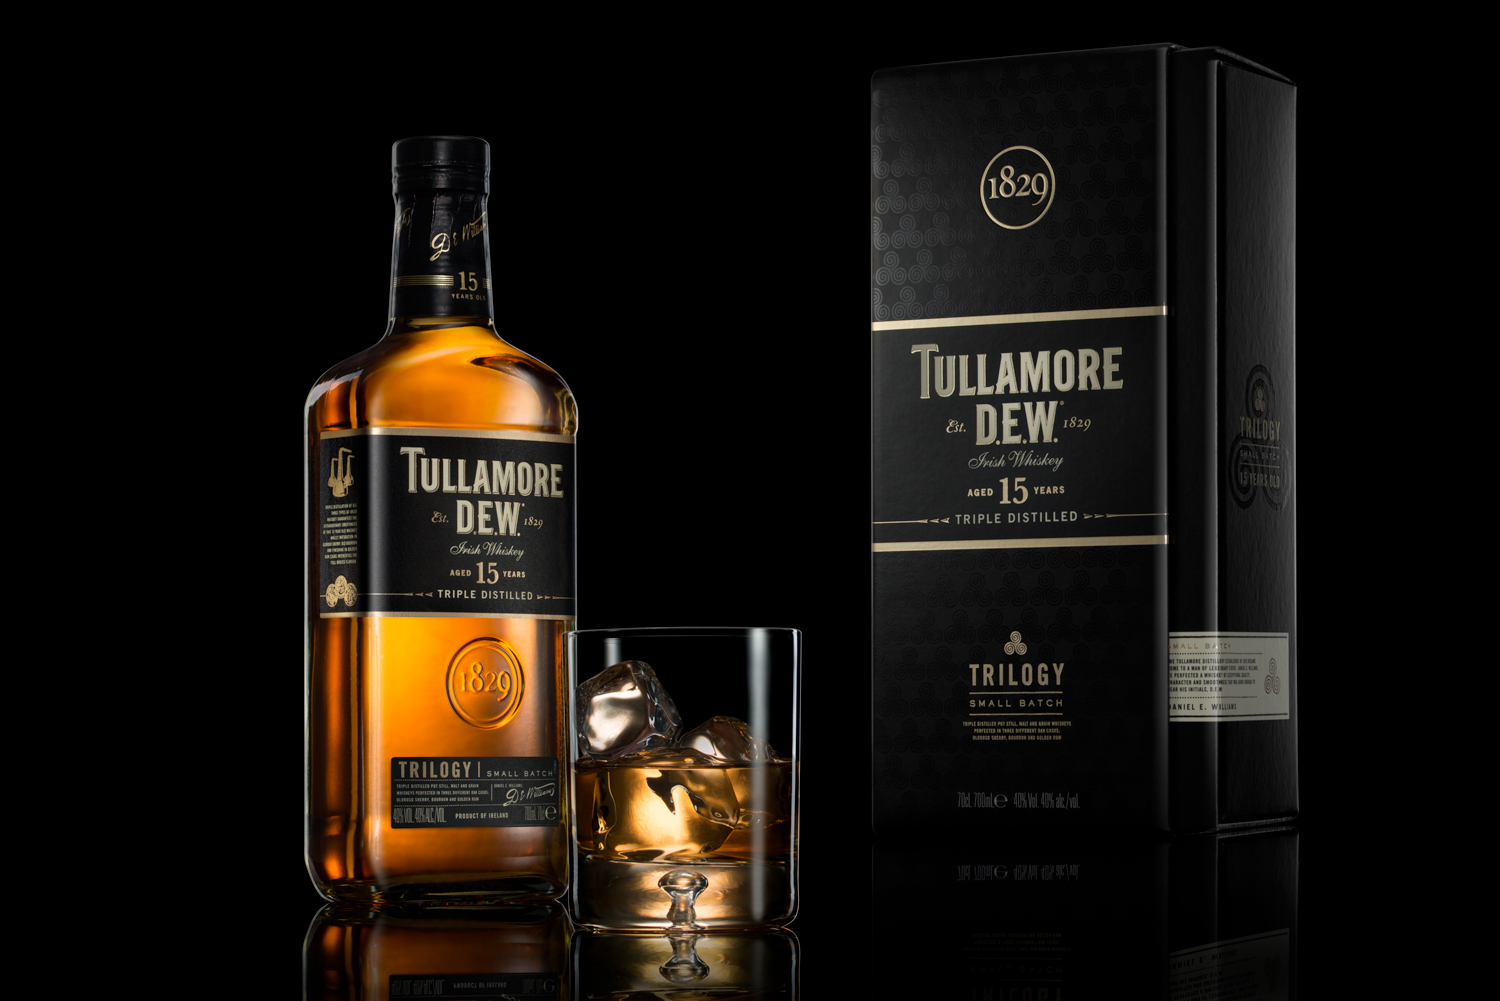 lettstudio_photography_beverage_whisky_tullamore_dew_15yo-big.jpg